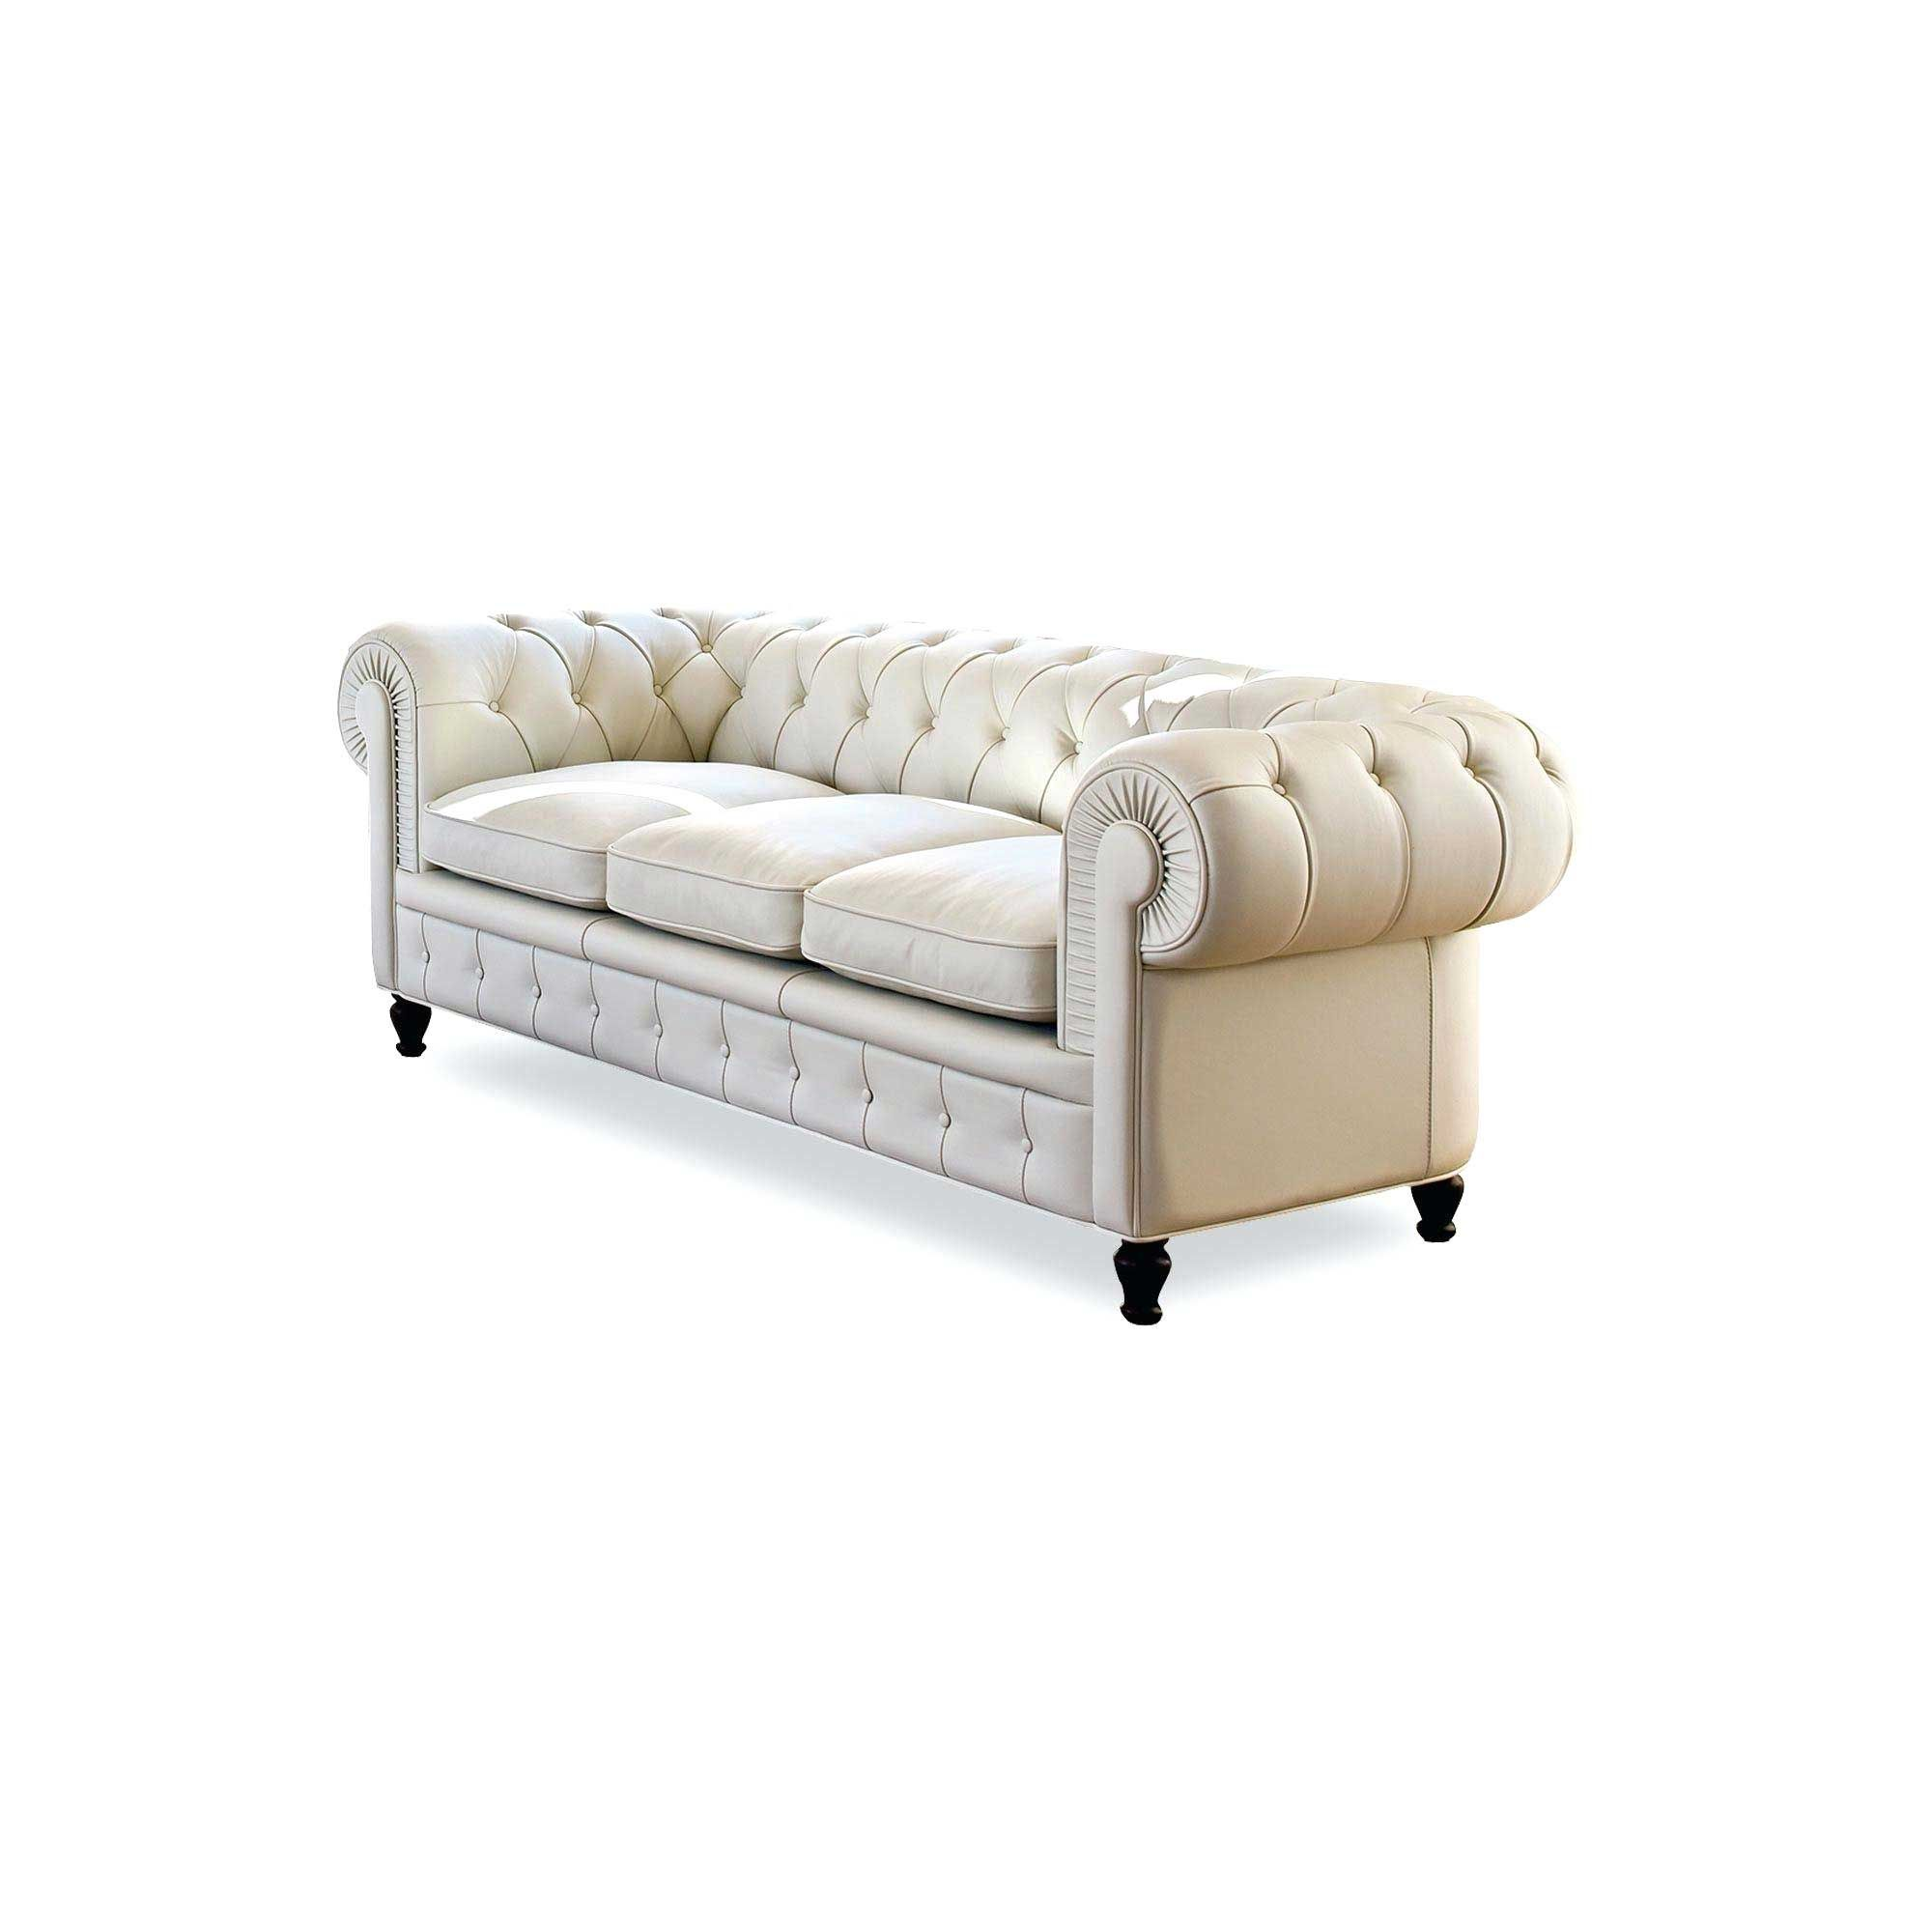 Canap Chesterfield Occasion Avec Design D Int Rieur Canape Chesterfield Cuir Canape Chesterfield Ide Canape Chesterfield Canape Chesterfield